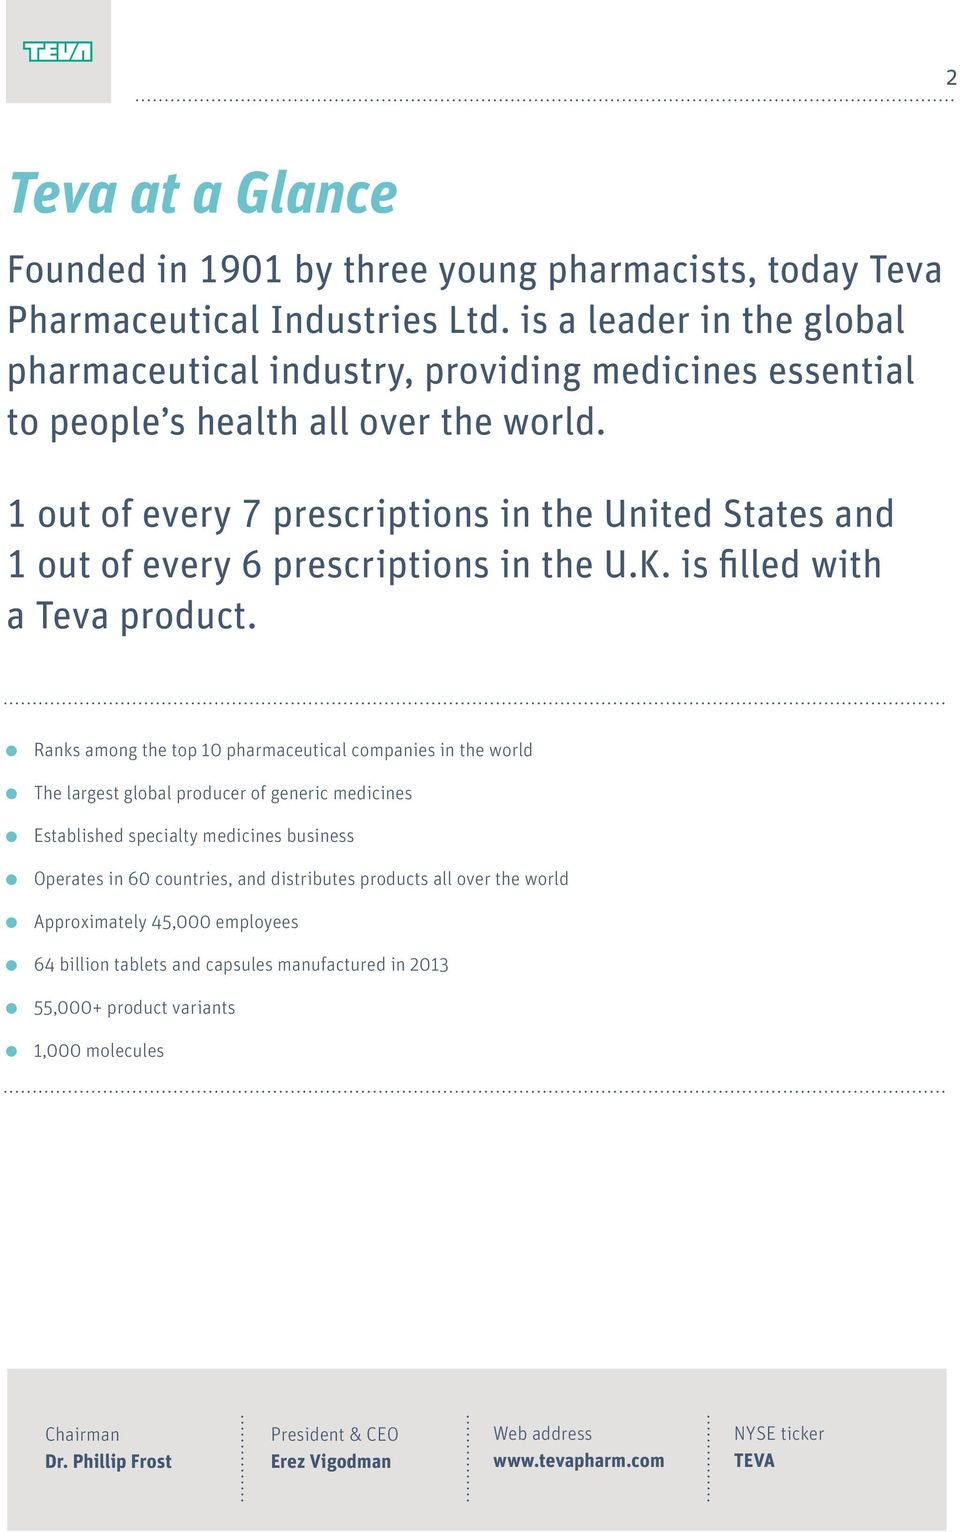 1 out of every 7 prescriptions in the United States and 1 out of every 6 prescriptions in the U.K. is filled with a Teva product.